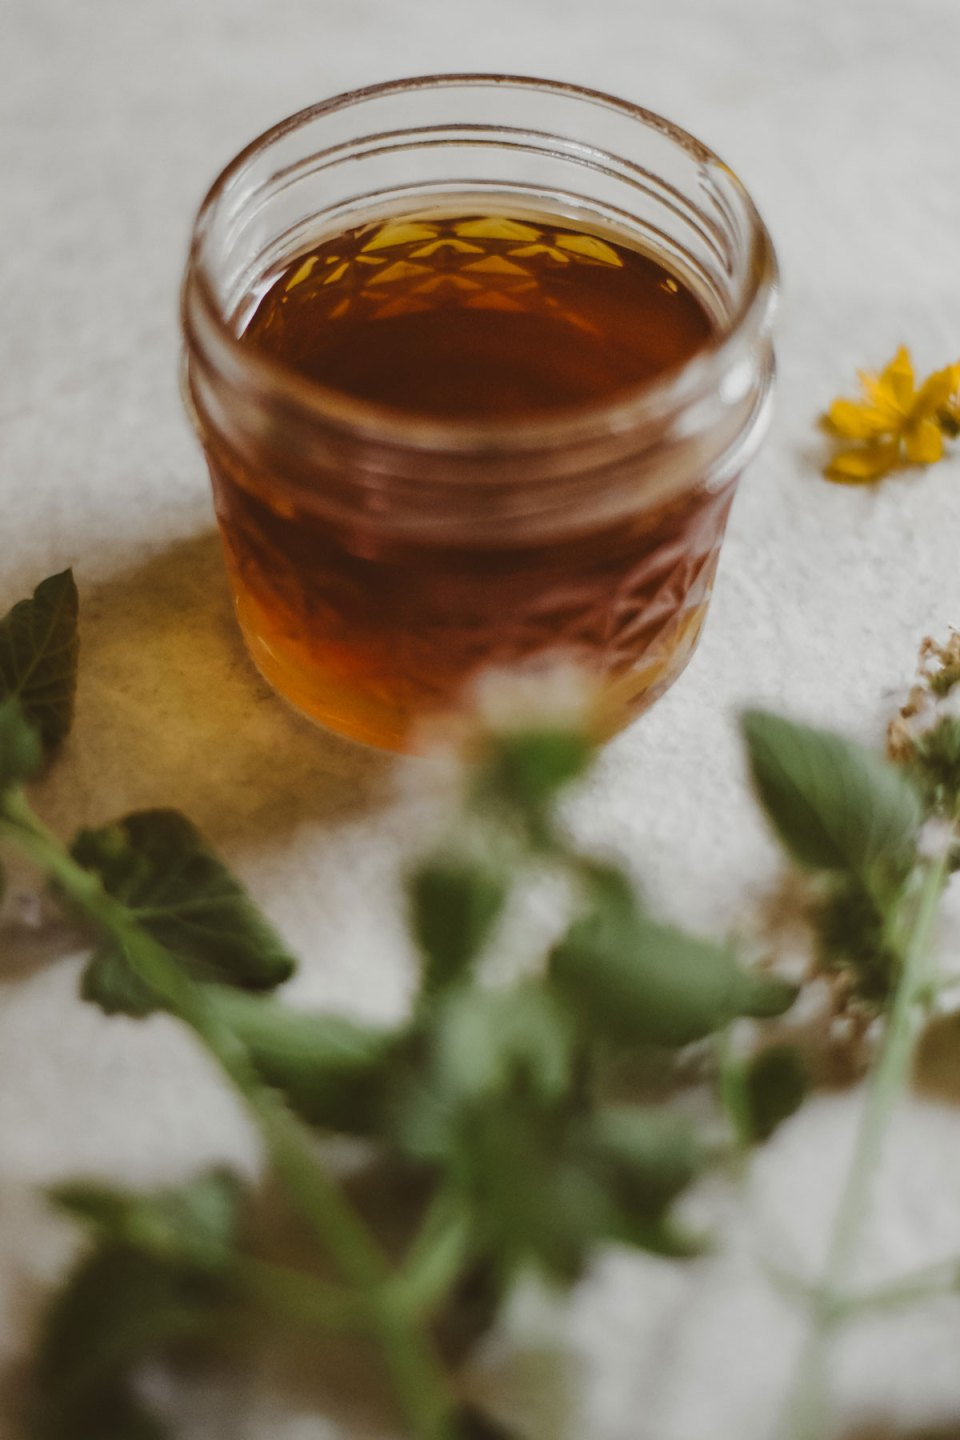 Golden oil surrounded by St. John's wort flowers and leaves